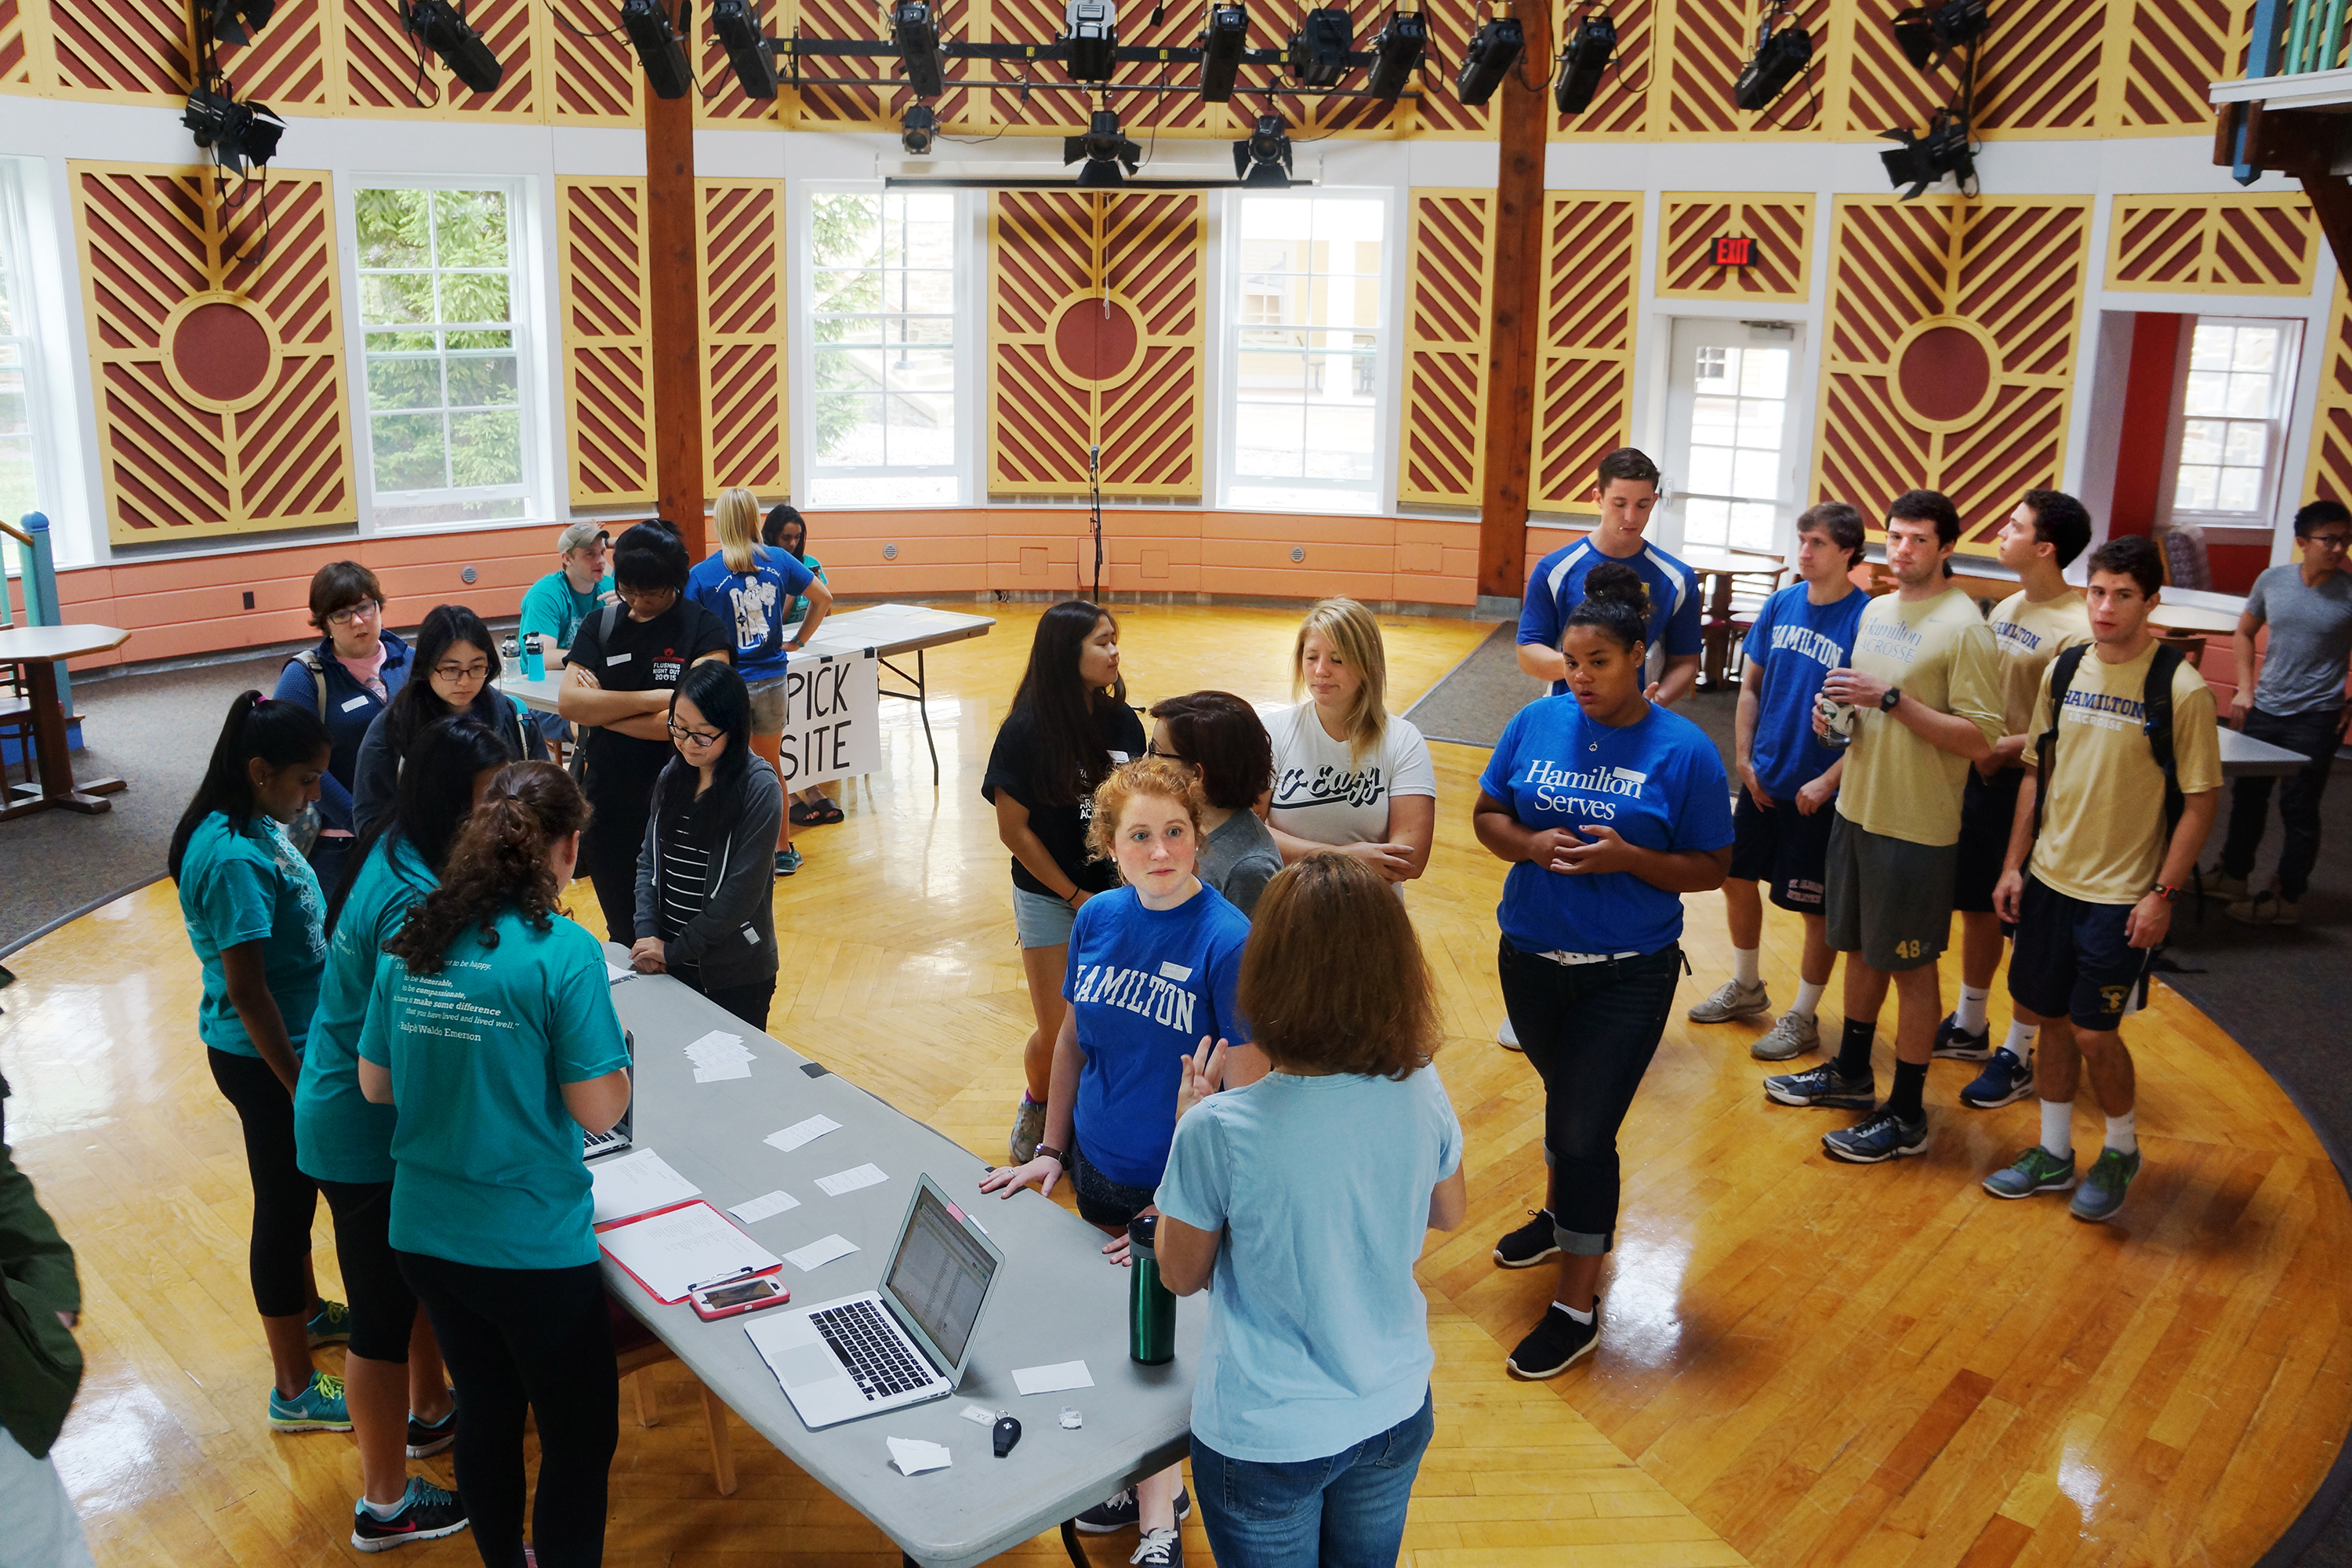 Students gather in the Events Barn to sign up for Make a Difference Day volunteer opportunities.